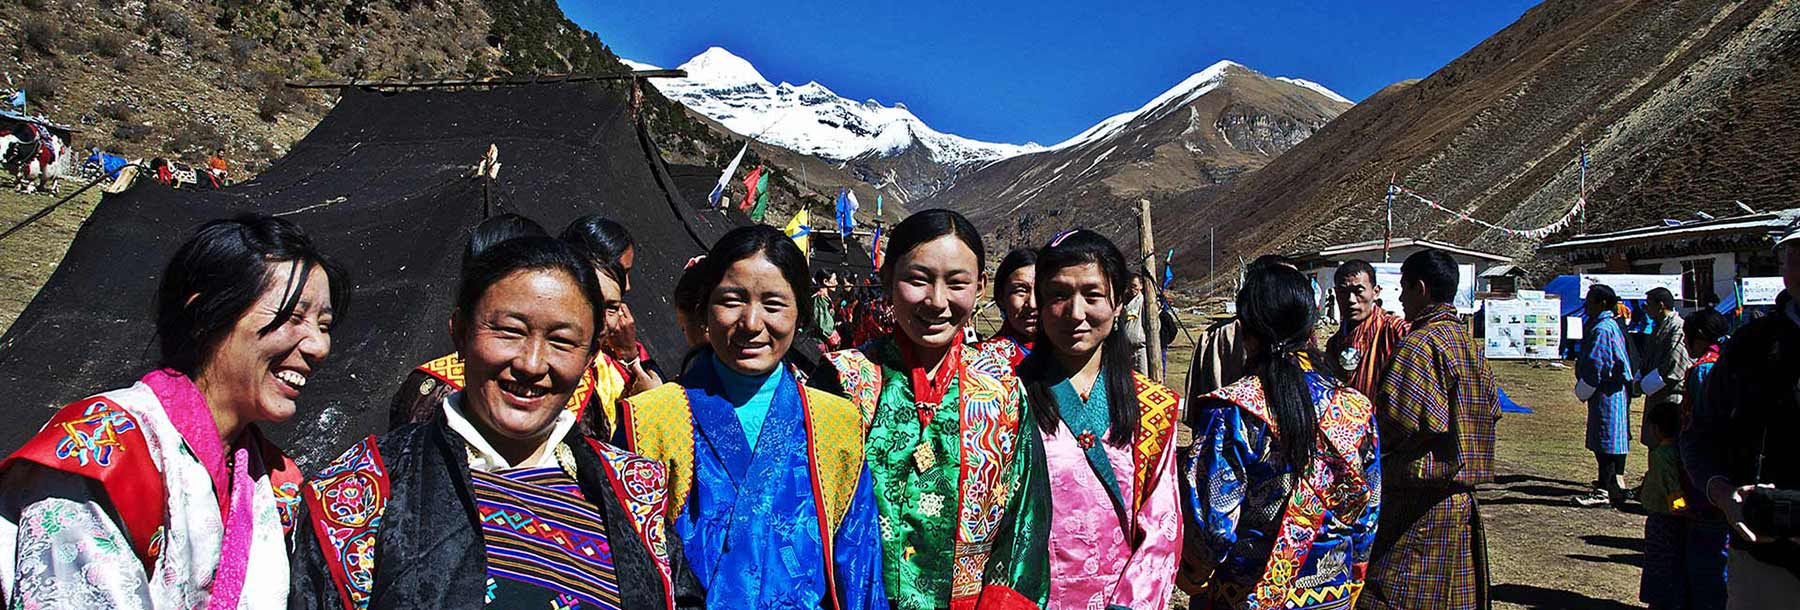 Women of Jomolhari during annual mountain festival